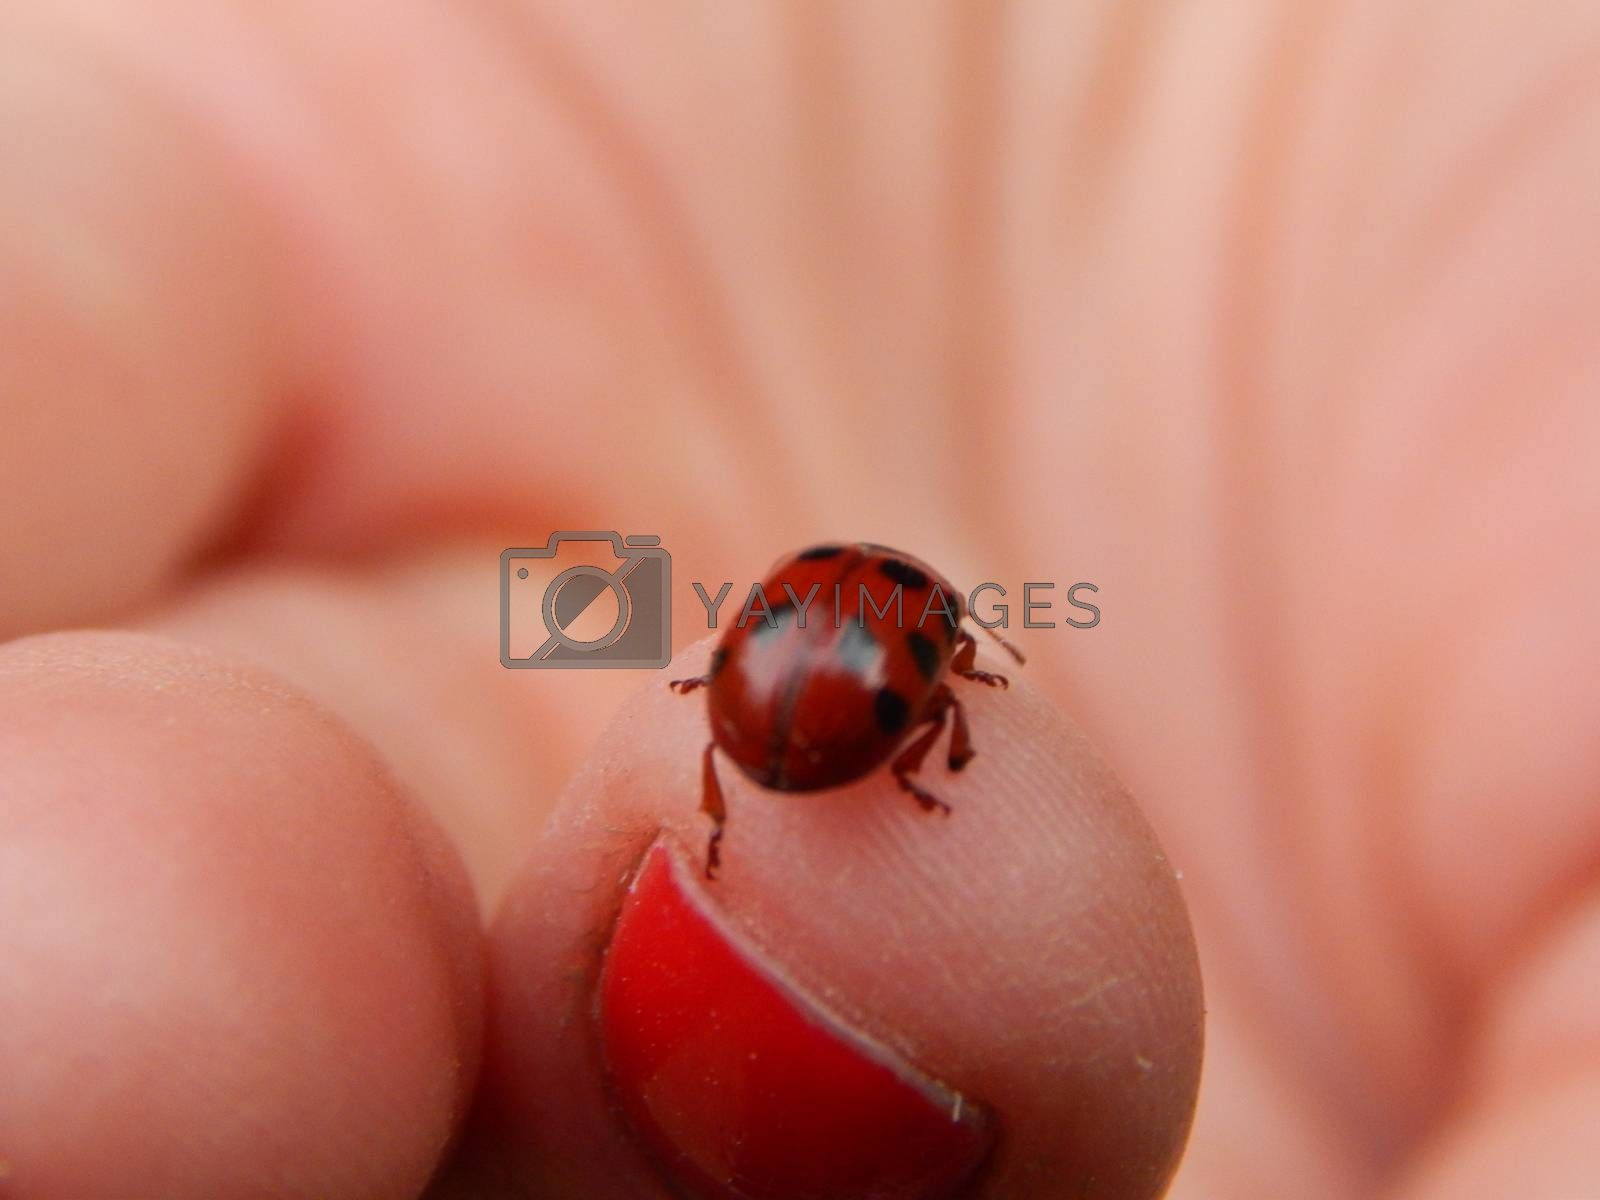 Beetles on hand and fingers